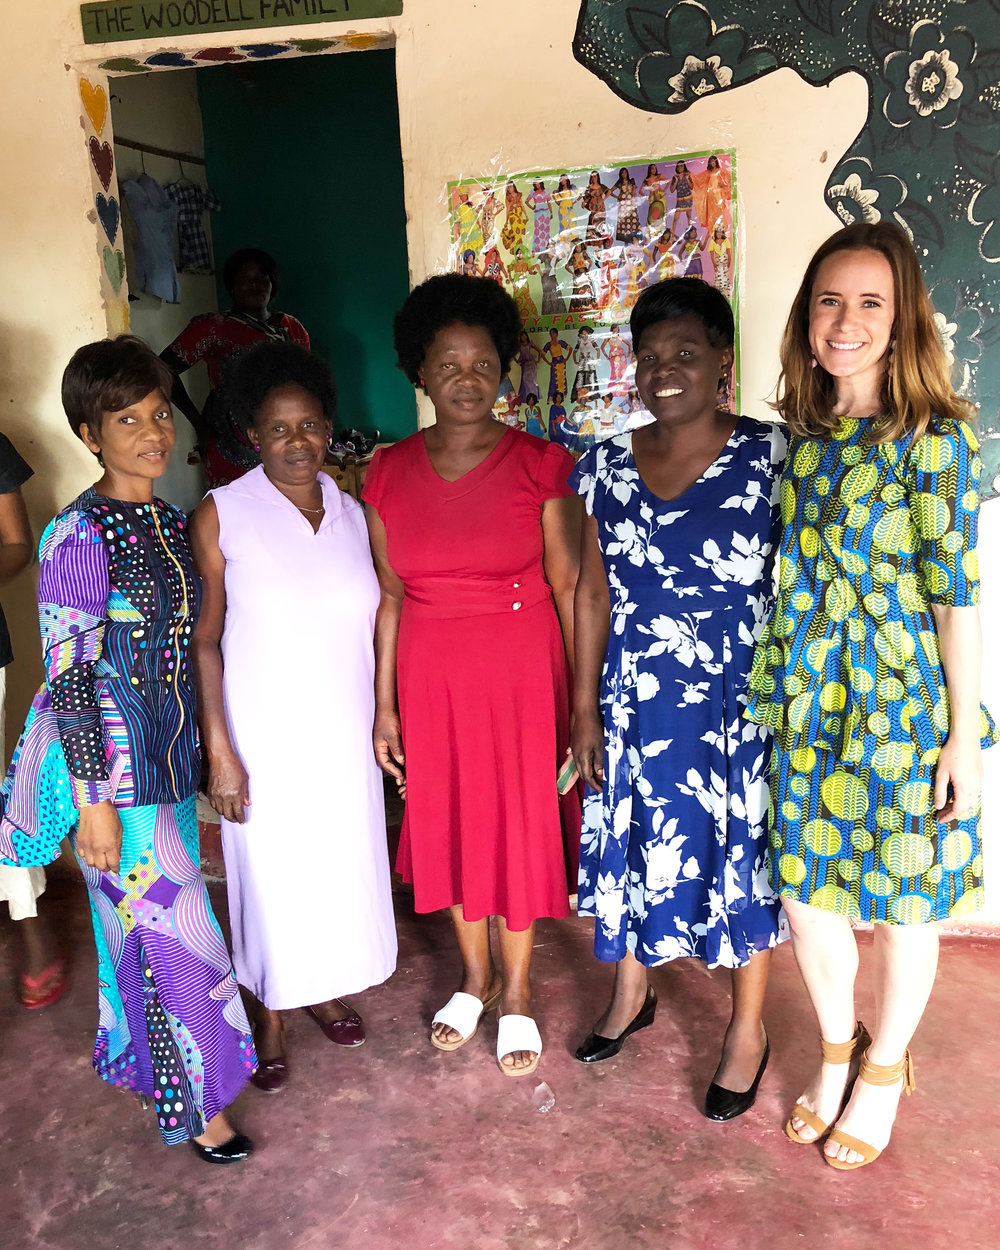 Elina (In-Country Director), Jessy (Micro-Loan Coordinator), Emeli (Asst. Director), Fridah (Lead Sewing Instructor), and myself in my gorgeous outfit!